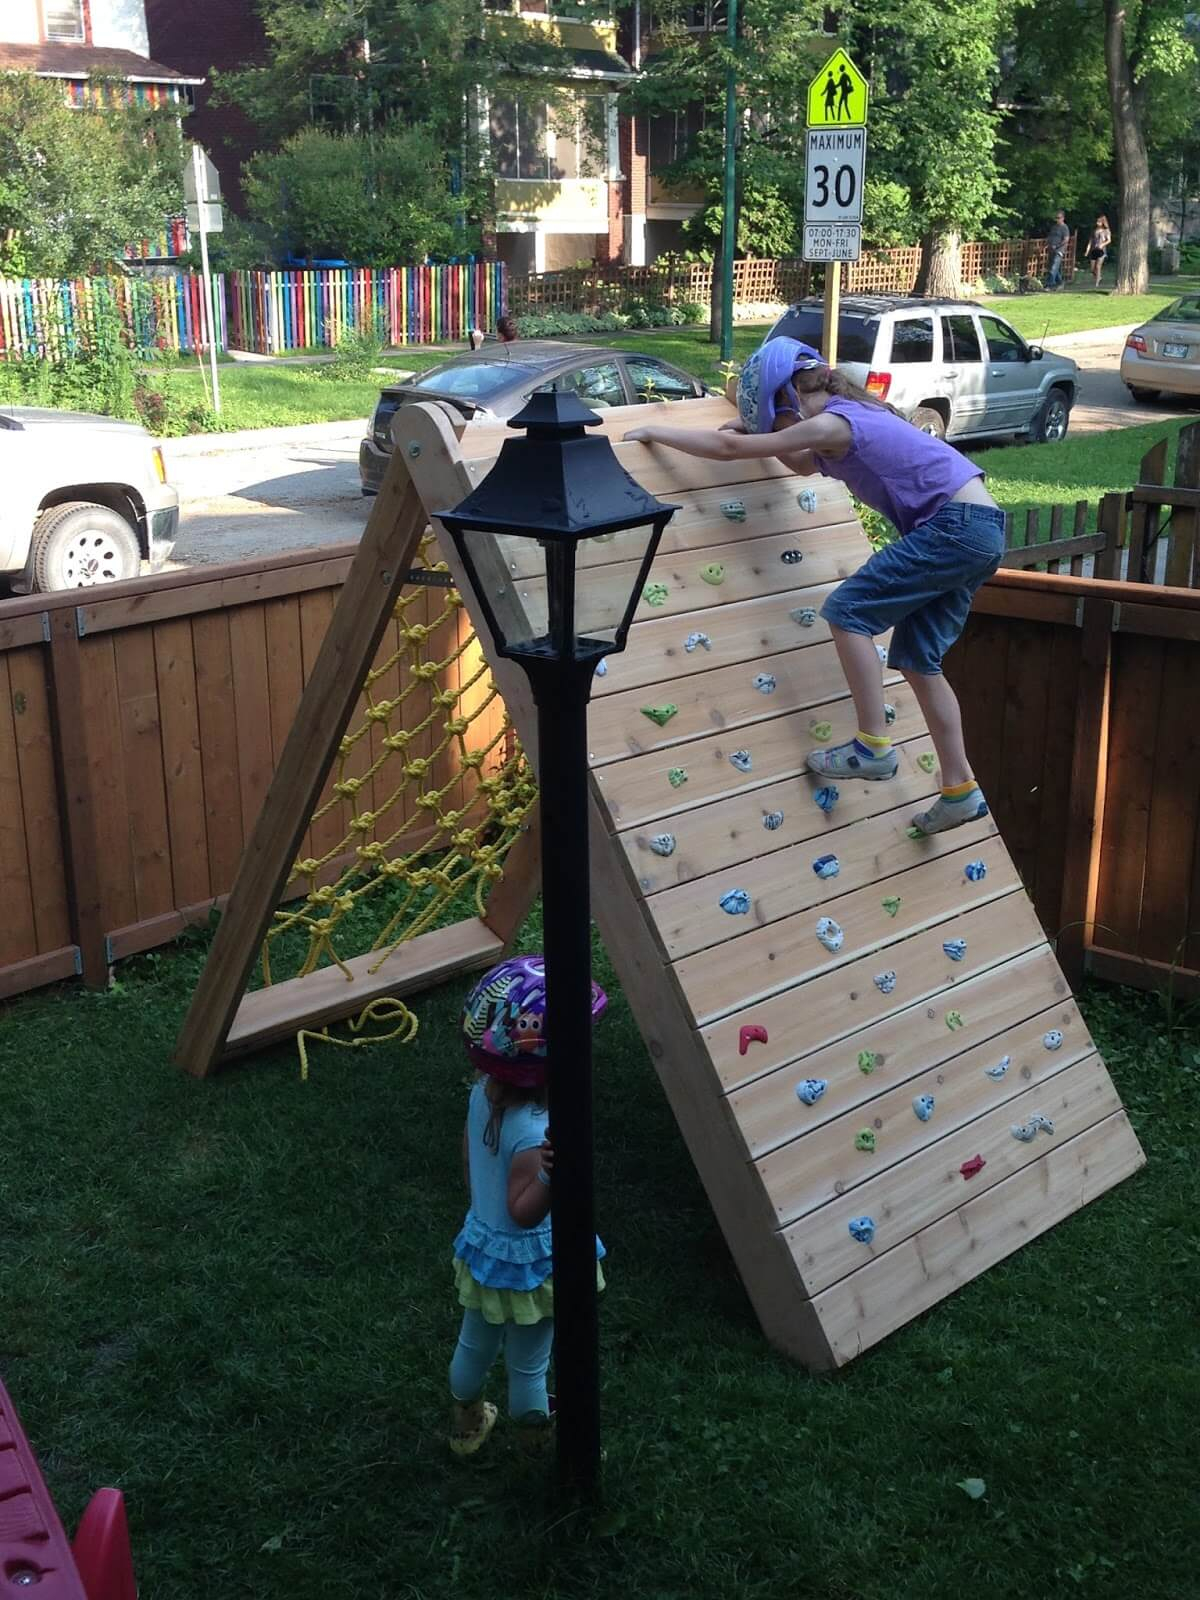 34 Best Diy Backyard Ideas And Designs For Kids In 2019 within 15 Smart Tricks of How to Upgrade Kids Backyard Ideas